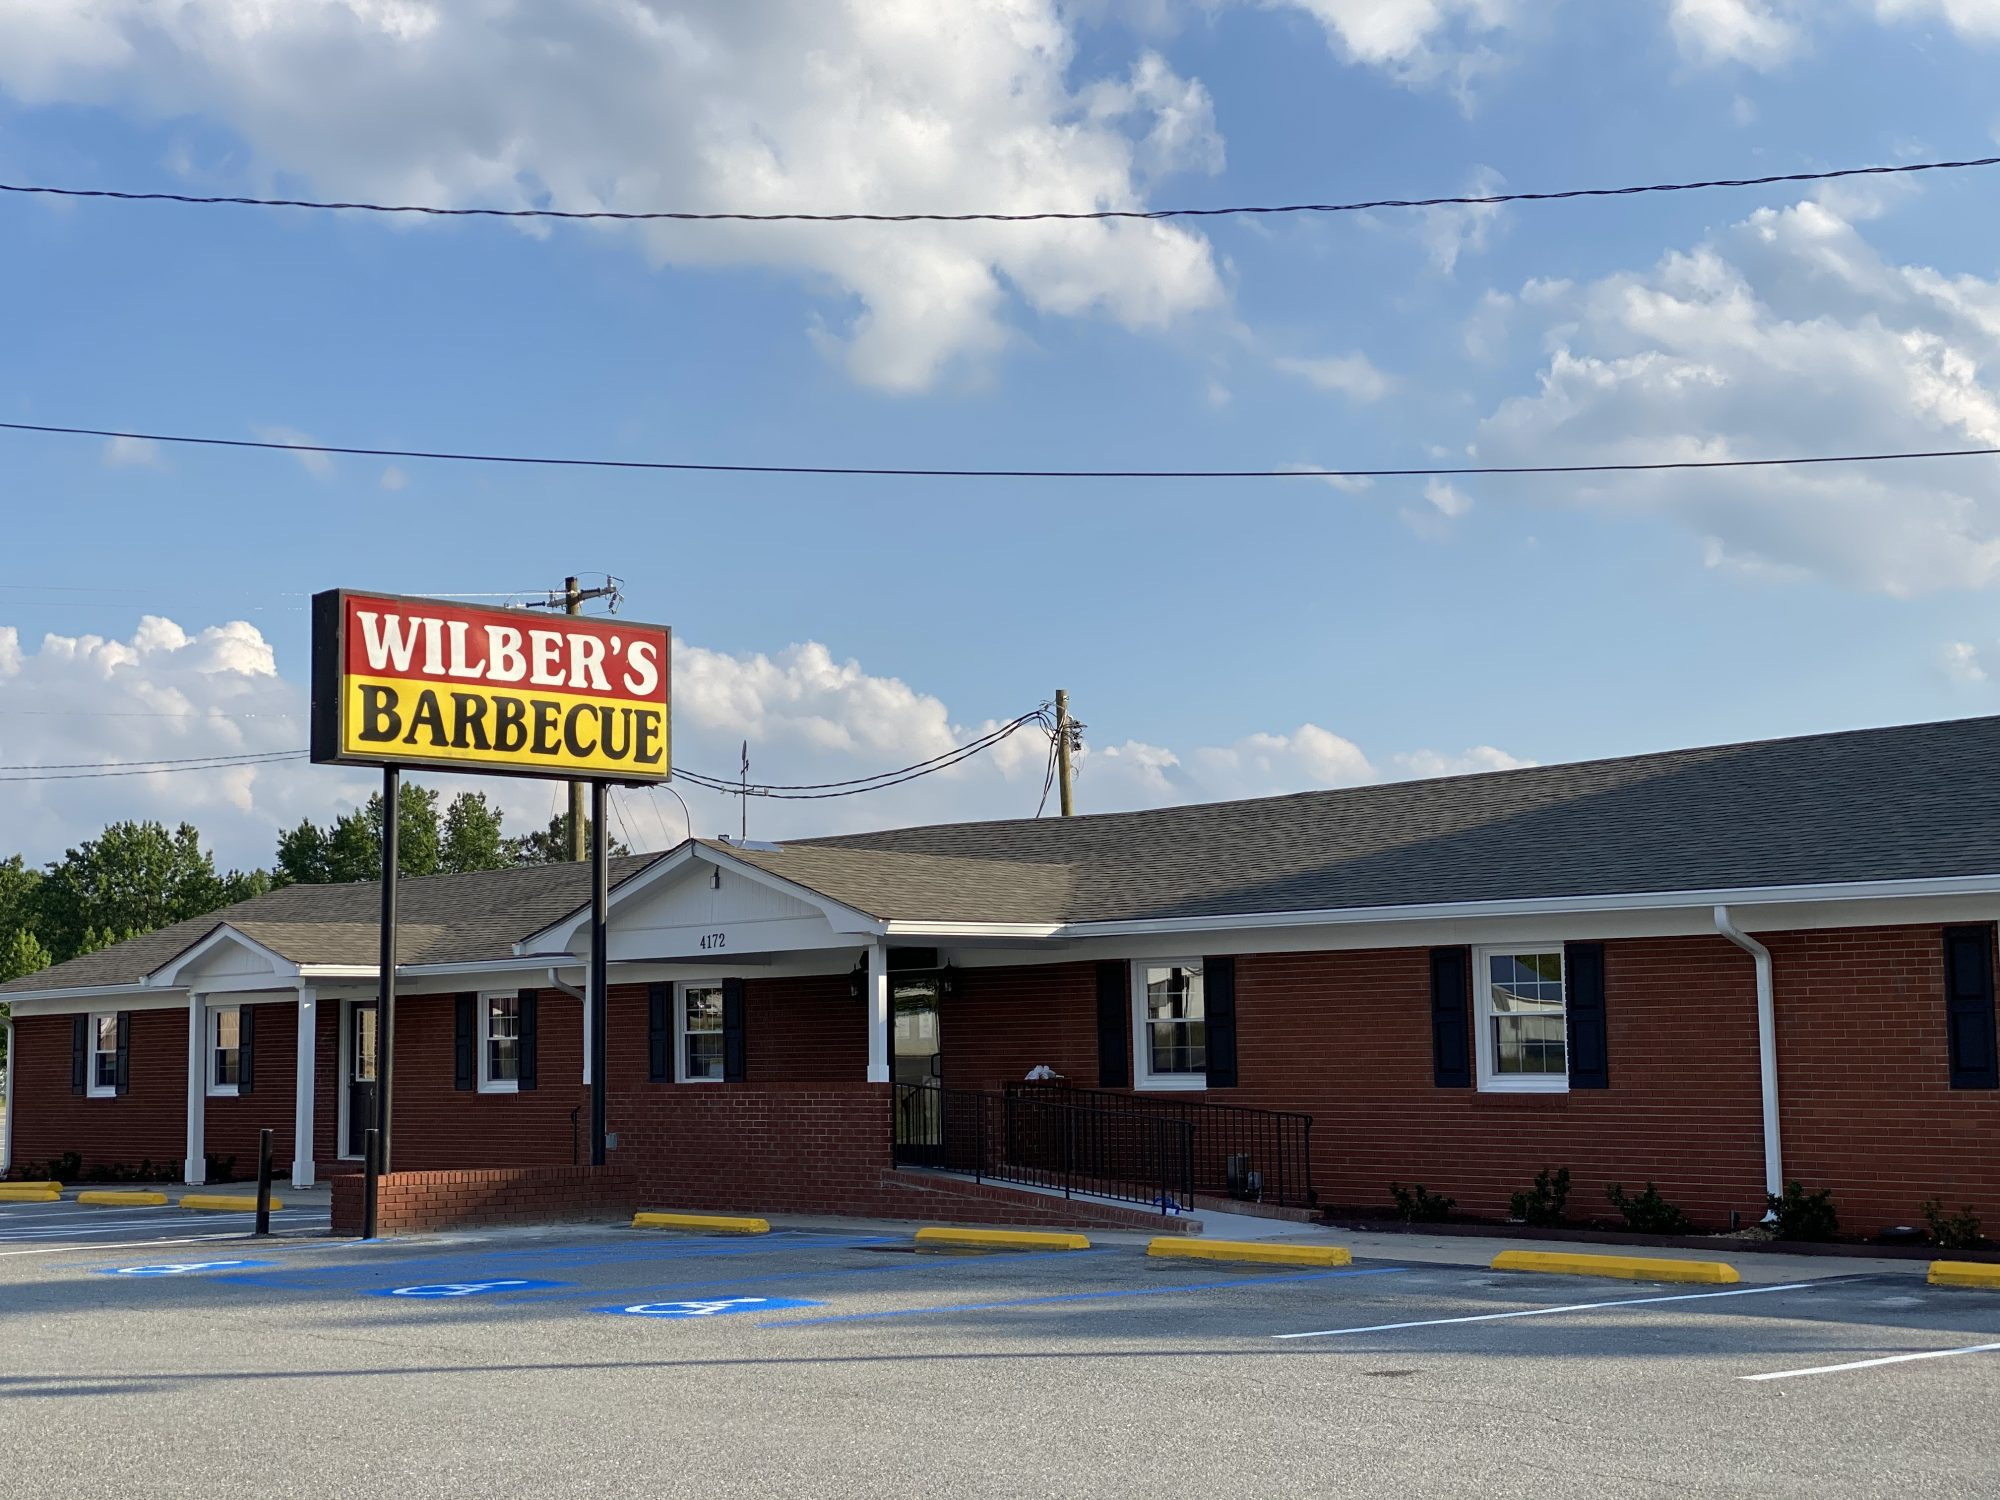 Wilber's Barbecue in Goldsboro, NC